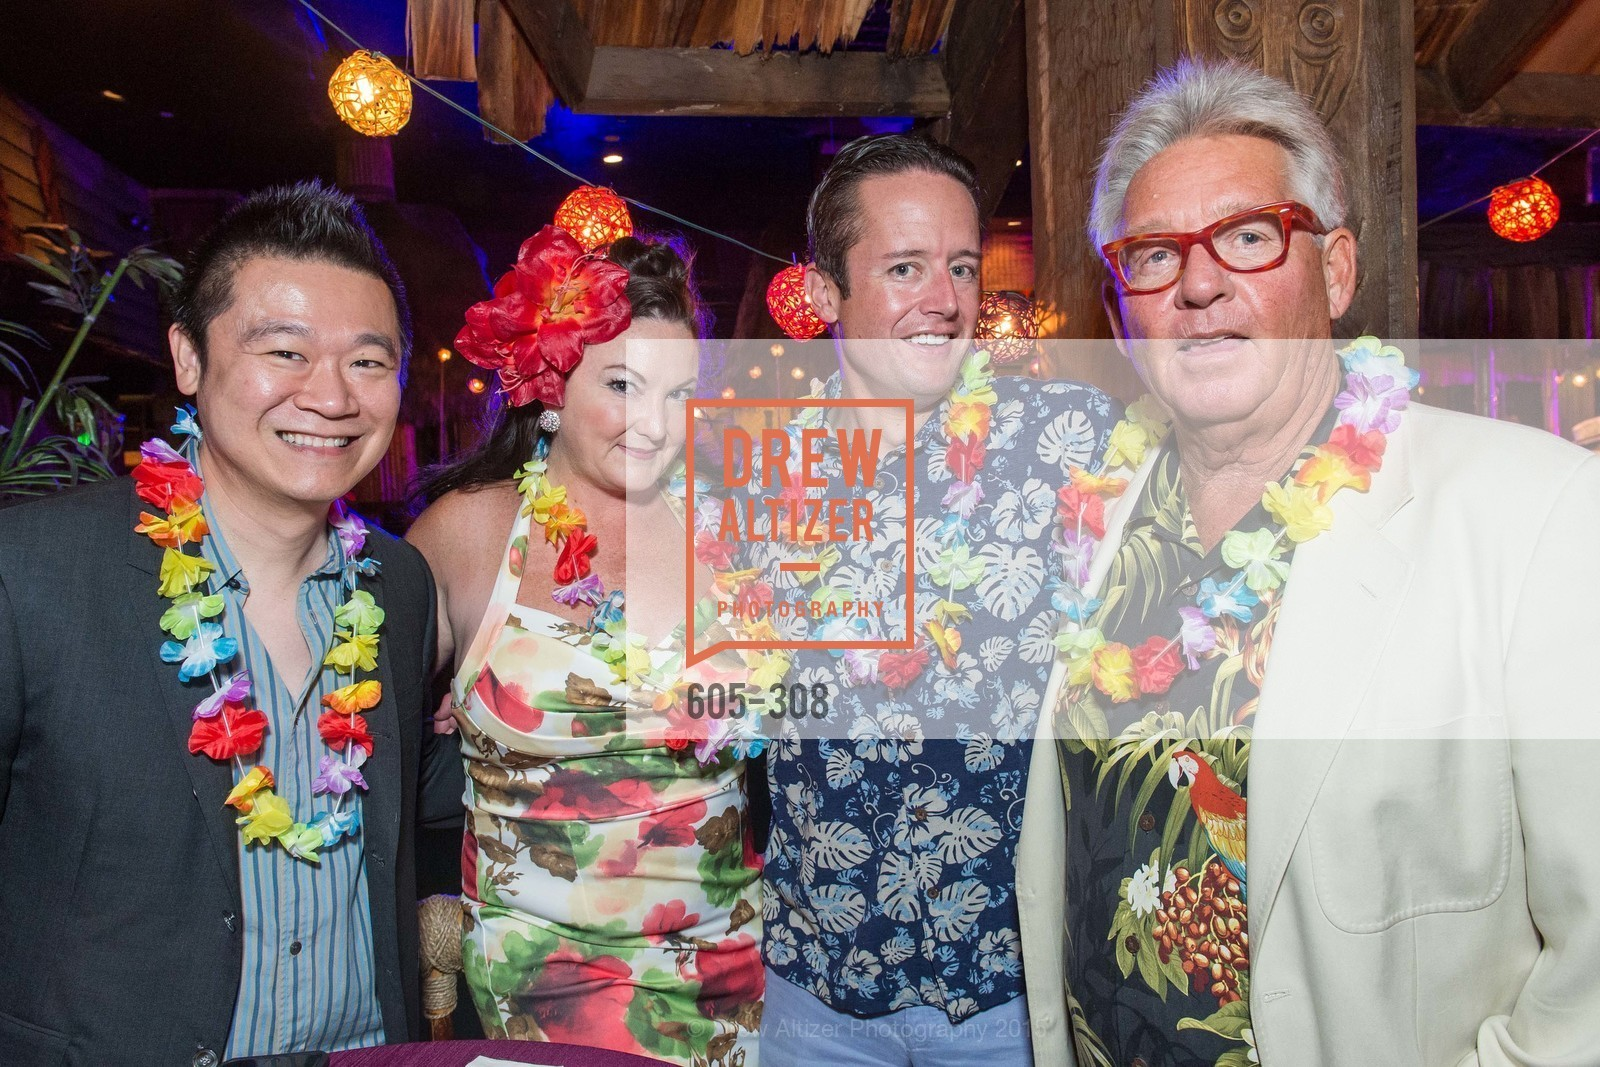 Kevin Hsu, Clara Sabatty Stammel, Randy Laubhan, Tonga Room & Hurricane Bar Celebrates 70 Years of Tiki Glory, Fairmont, September 23rd, 2015,Drew Altizer, Drew Altizer Photography, full-service agency, private events, San Francisco photographer, photographer california